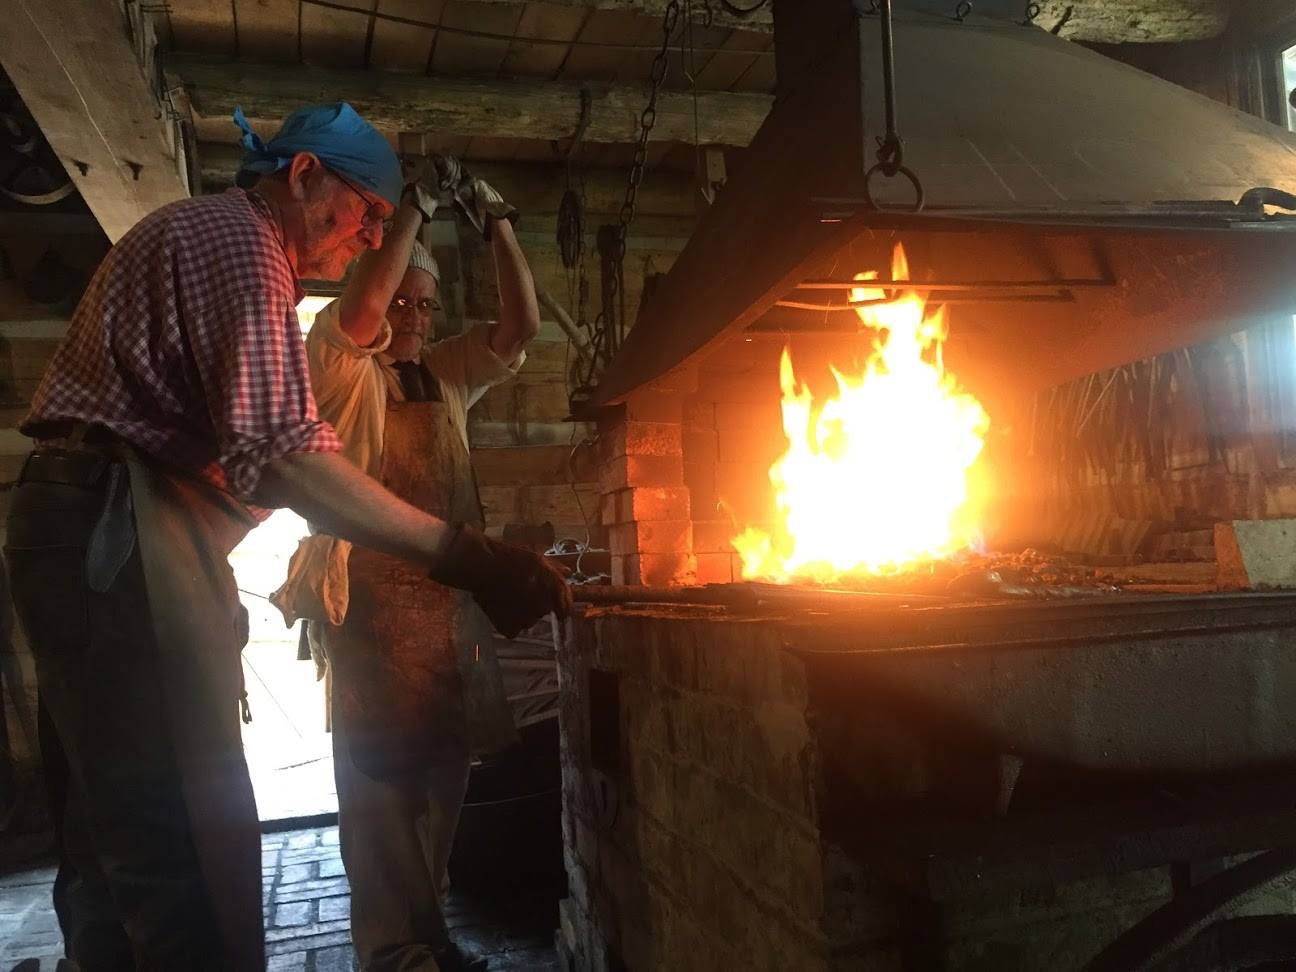 Blacksmiths have to use furnaces to produce 2000-3000 degrees of heat for shaping metal.